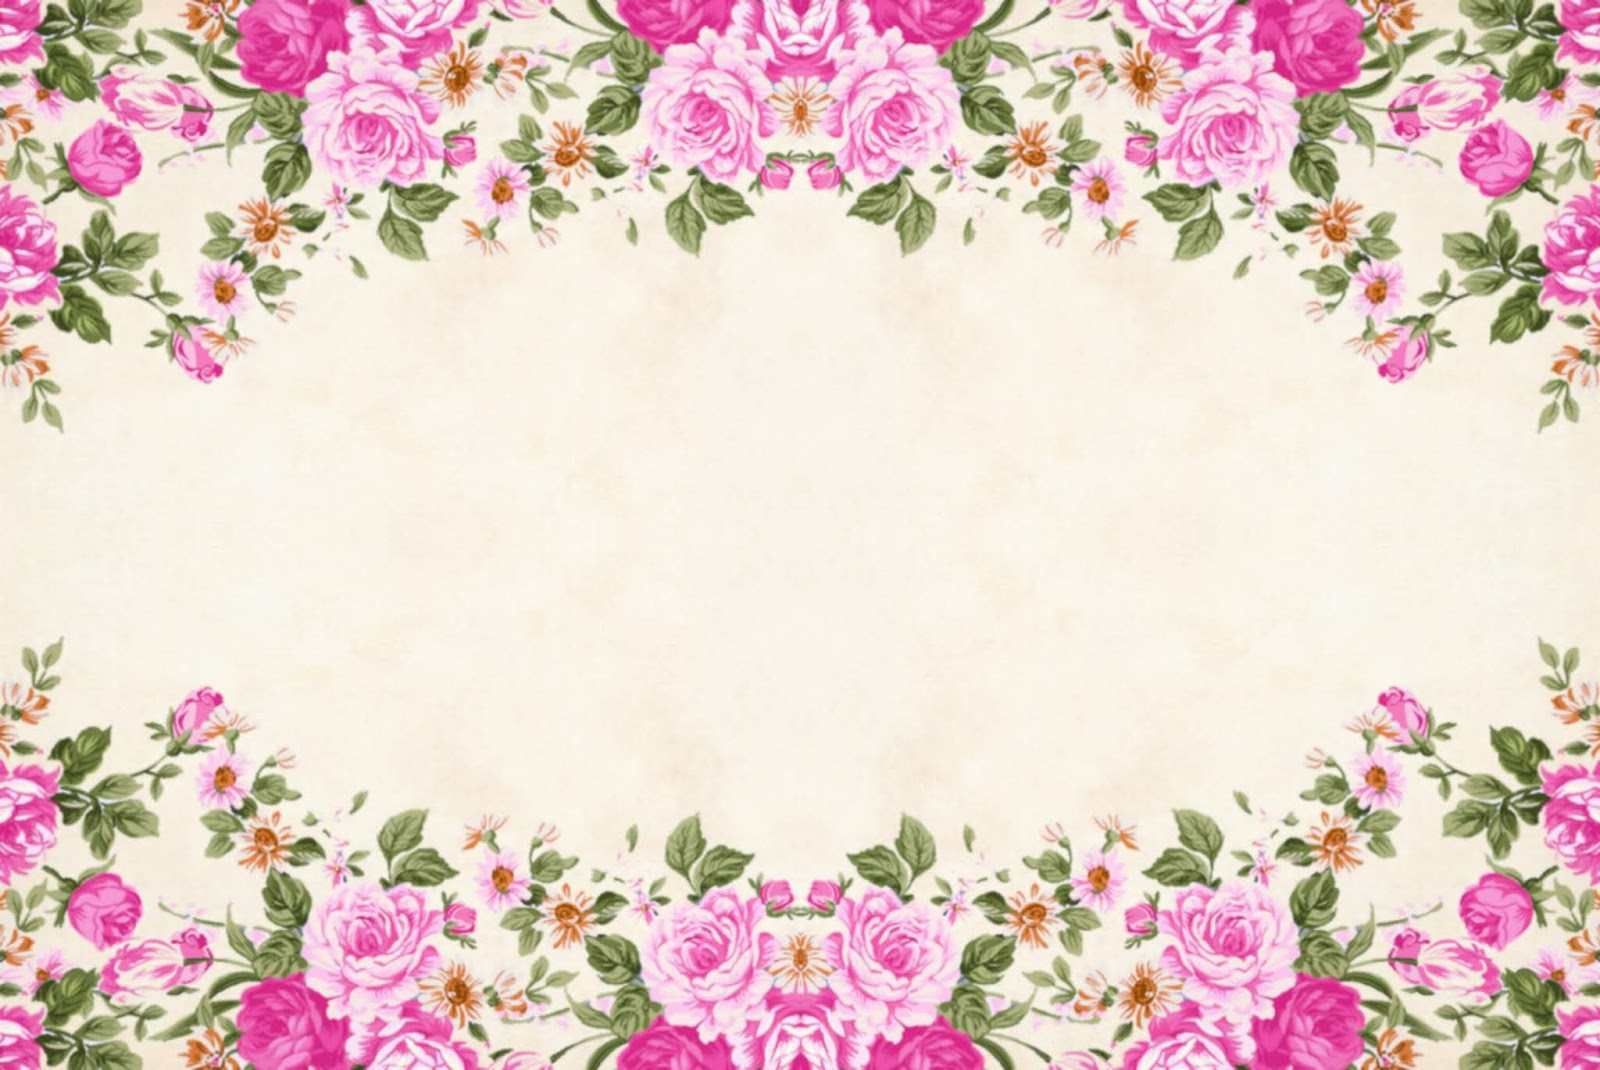 Flower Background Paper Free Images And Illustrations